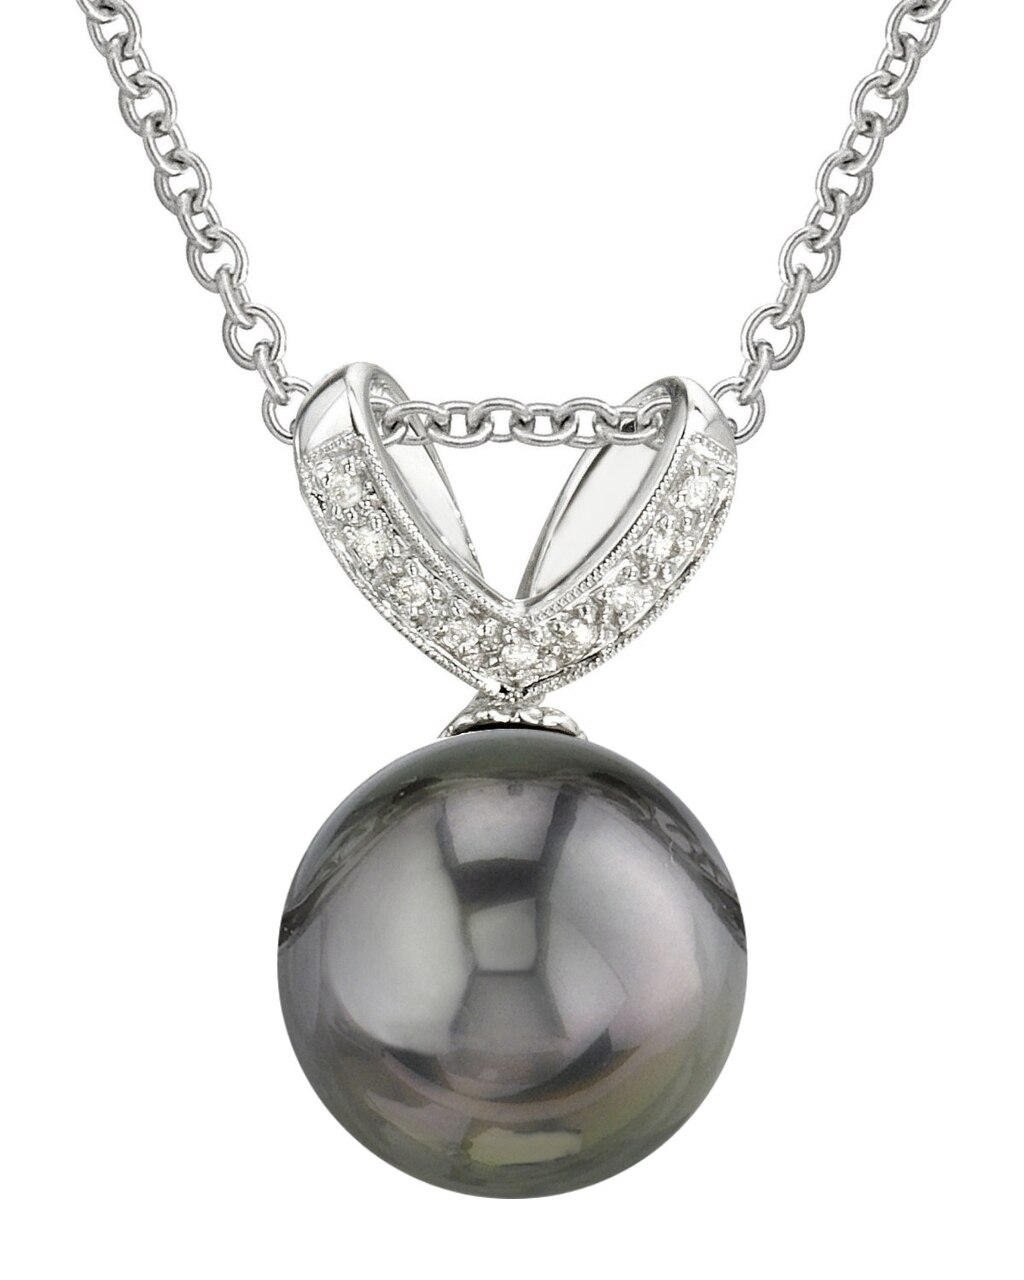 This exquisite pendant features an 11.0-12.0mm Tahitian South Sea Pearl, handpicked for its luminous luster